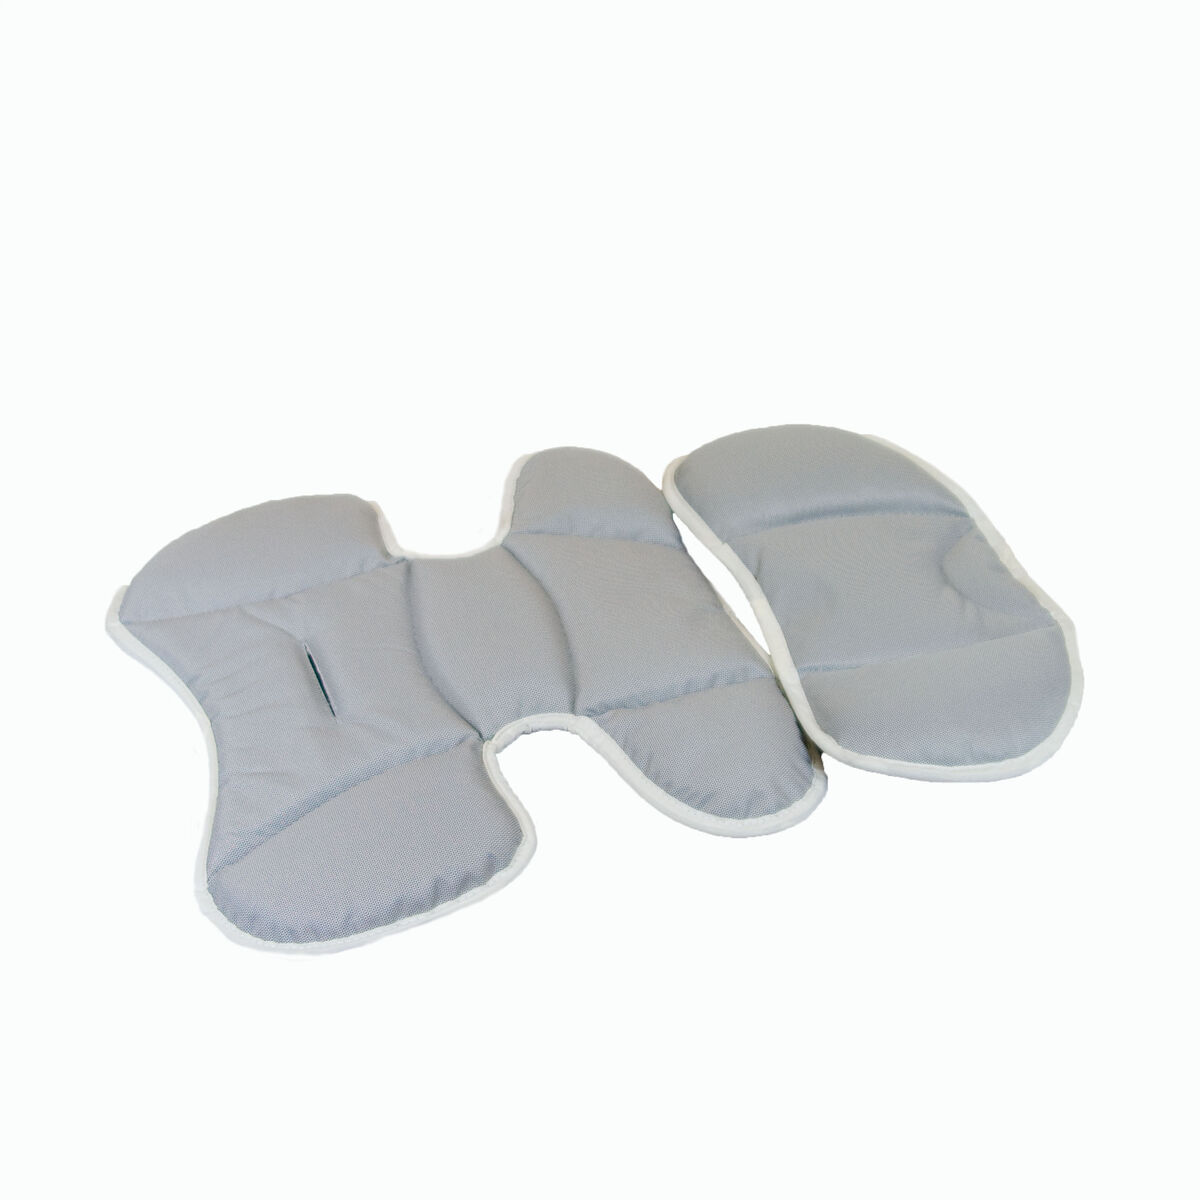 Chicco Keyfit Or Keyfit 30 Head And Body Insert